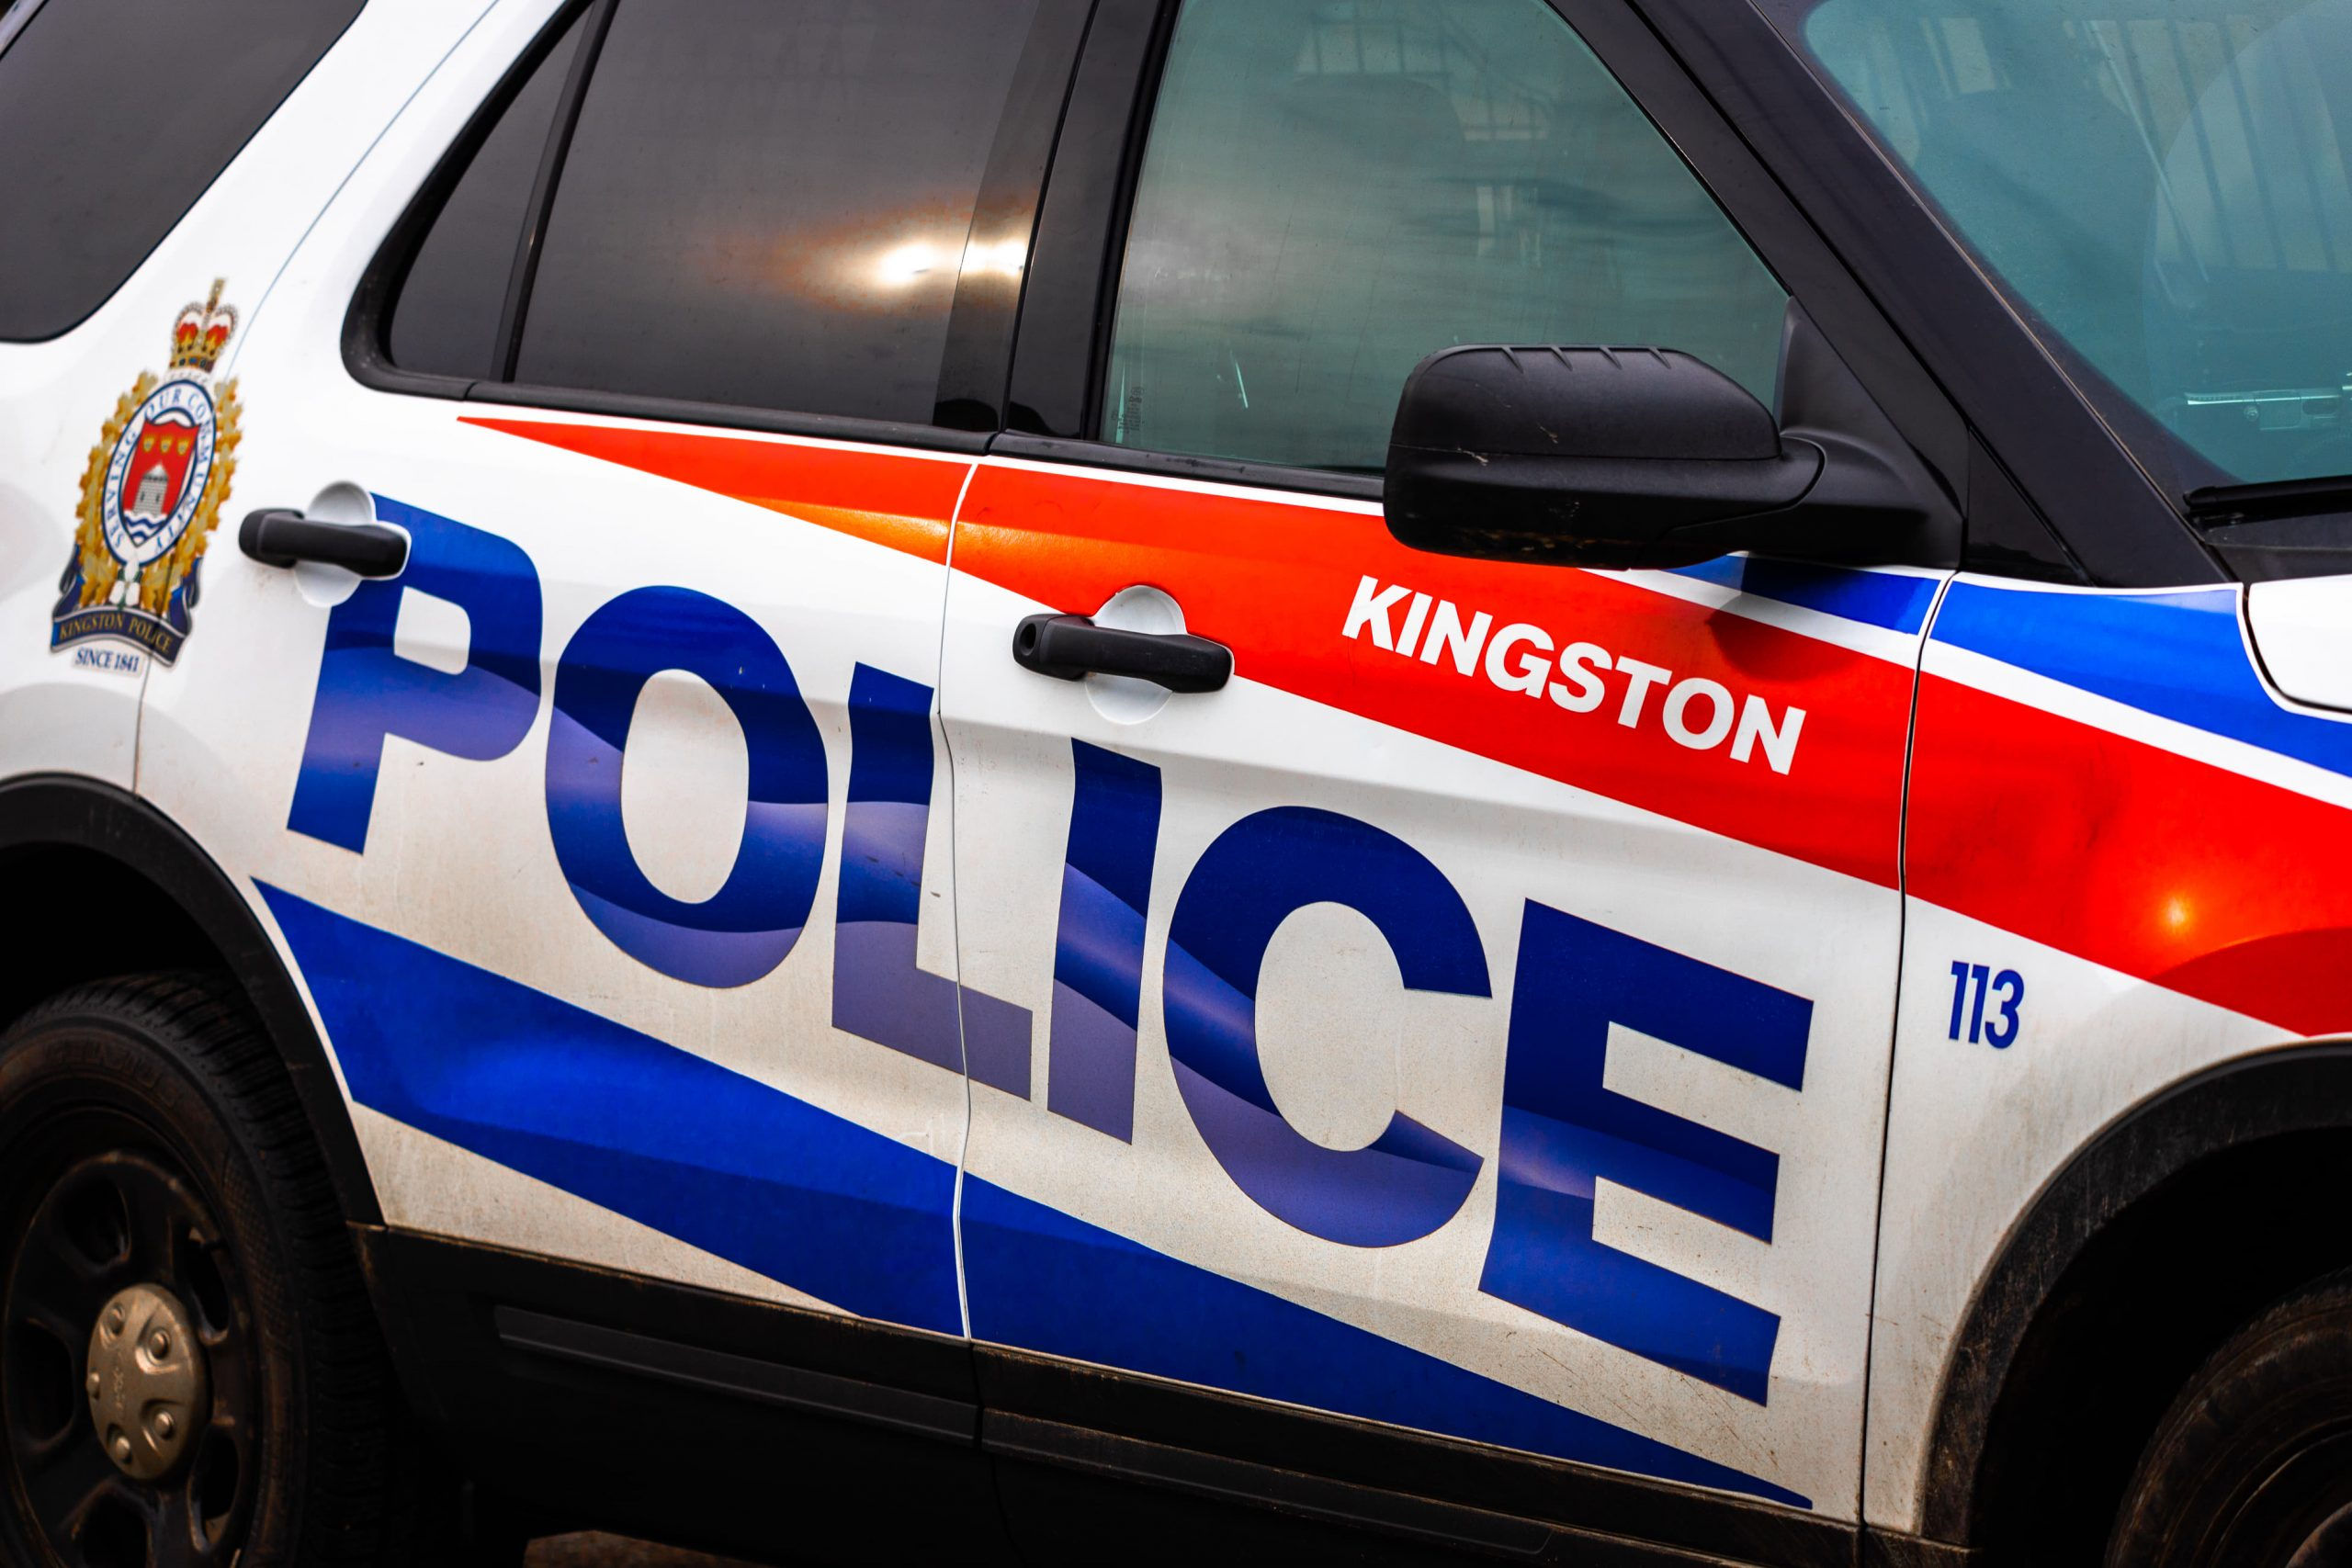 Amherstview man arrested on Canada-wide warrant for domestic violence, sexual assault